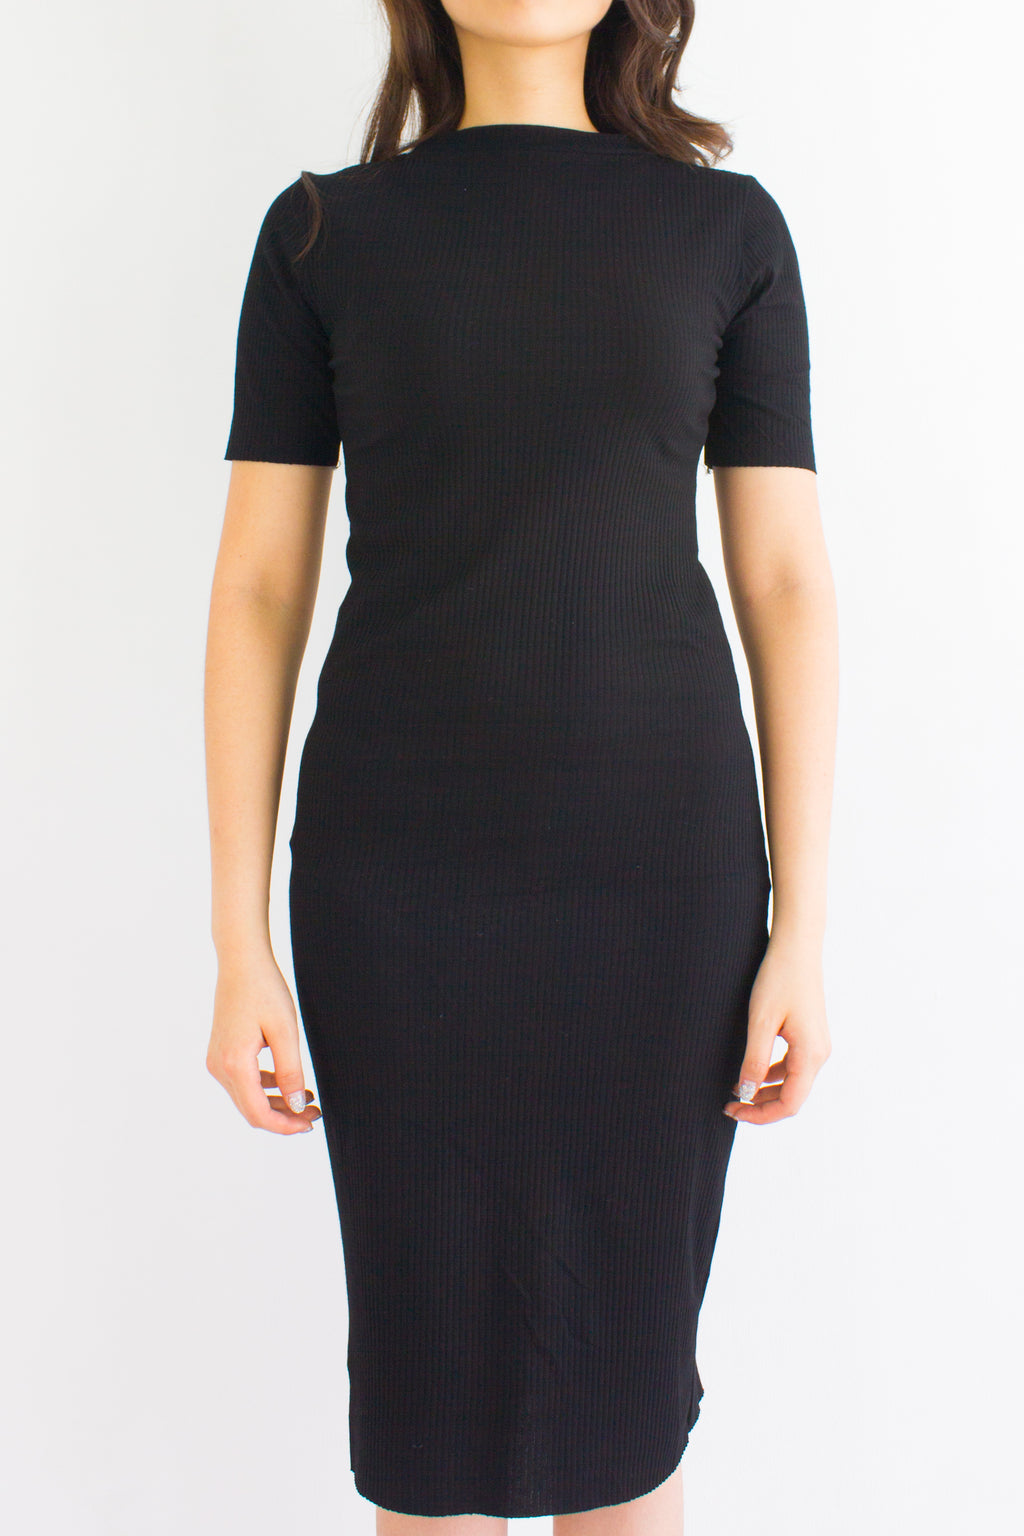 Classic Fitted Ribbed Midi Dress in Black - DRESSES - Peep Boutique